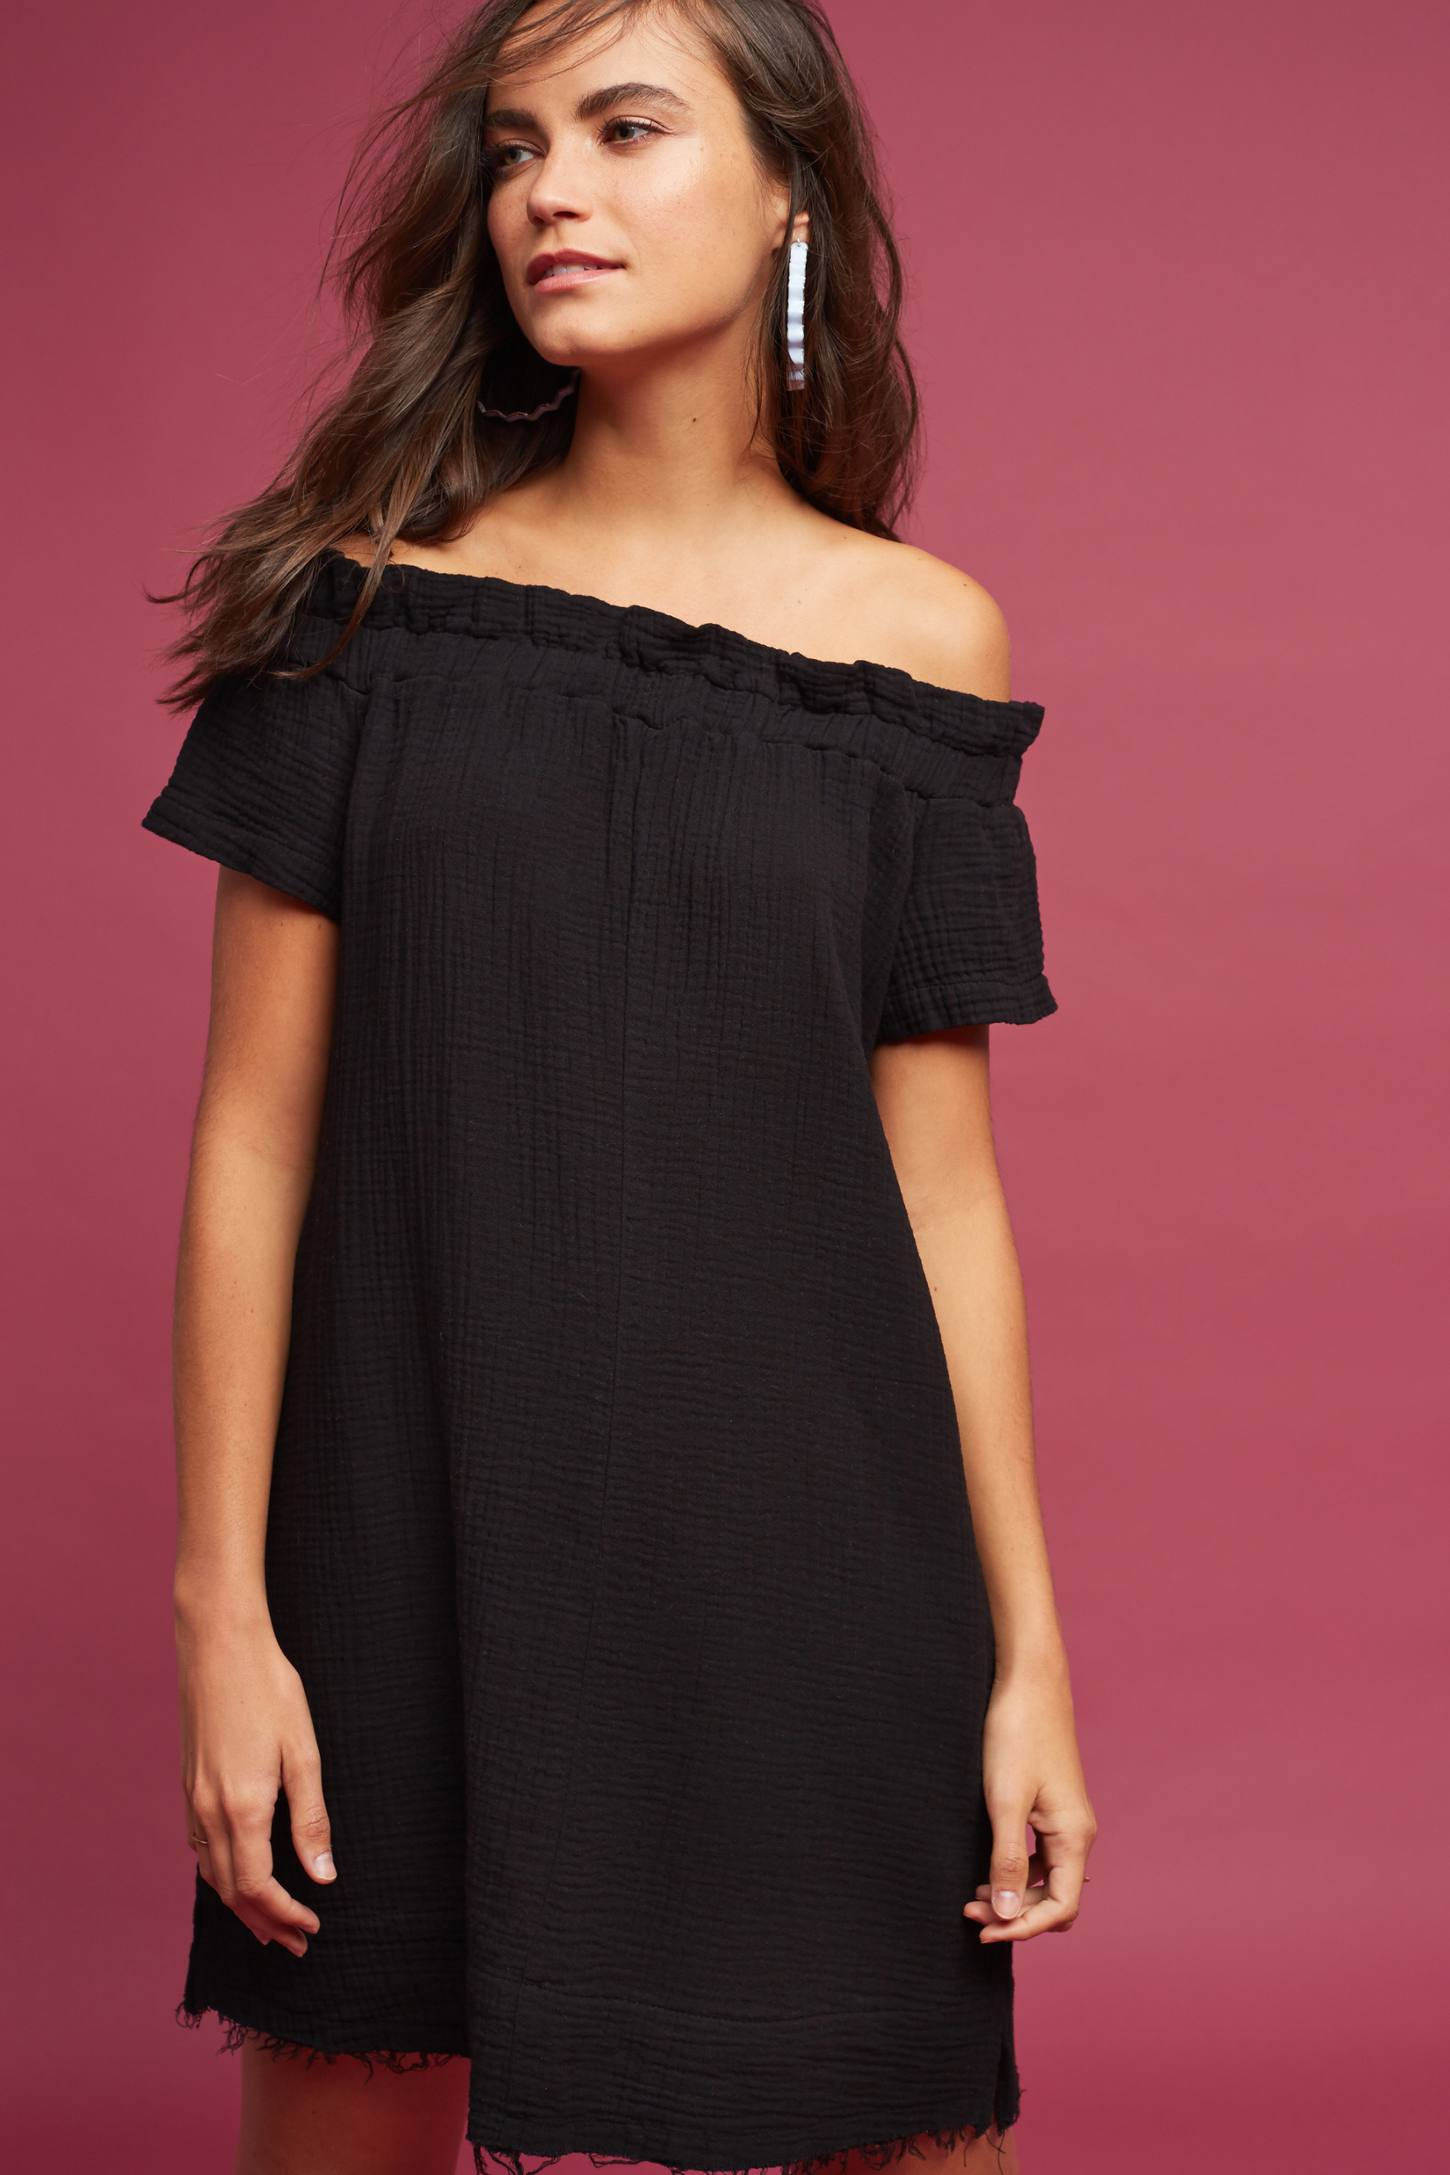 If you're looking for a dress that is as edgy as it is comfortable and easy to wear, you'll love this tunic style dress with its one shoulder slash neck and wide sleeves.5/5(1).